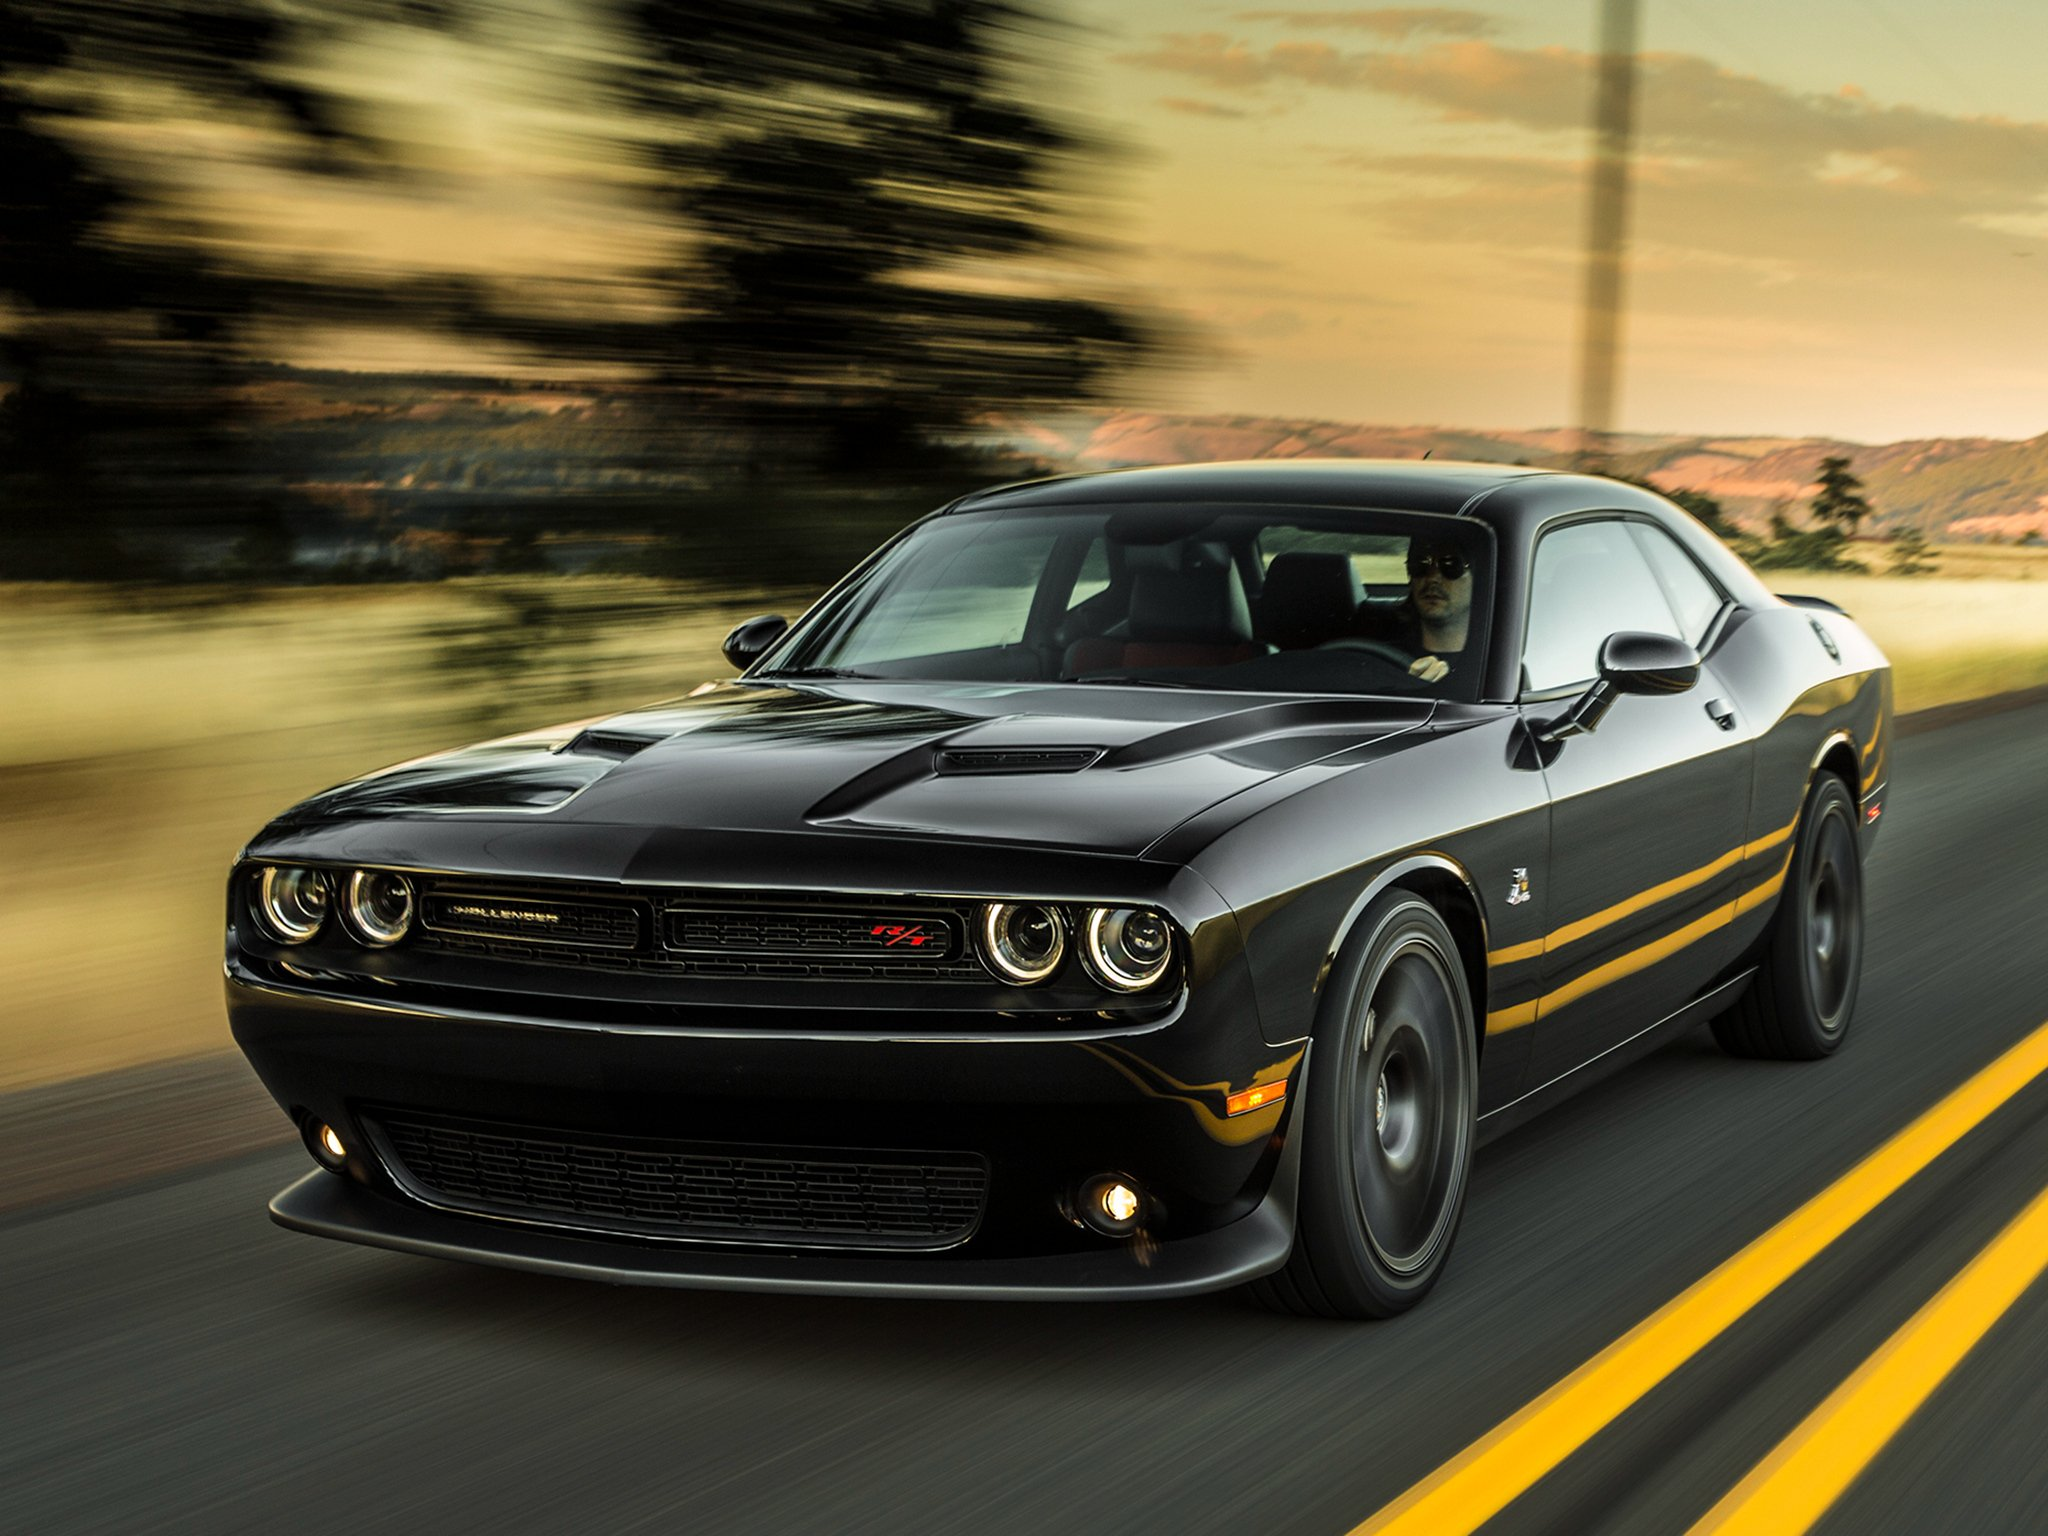 black 2015 dodge challenger wallpaper wallpapersafari. Black Bedroom Furniture Sets. Home Design Ideas